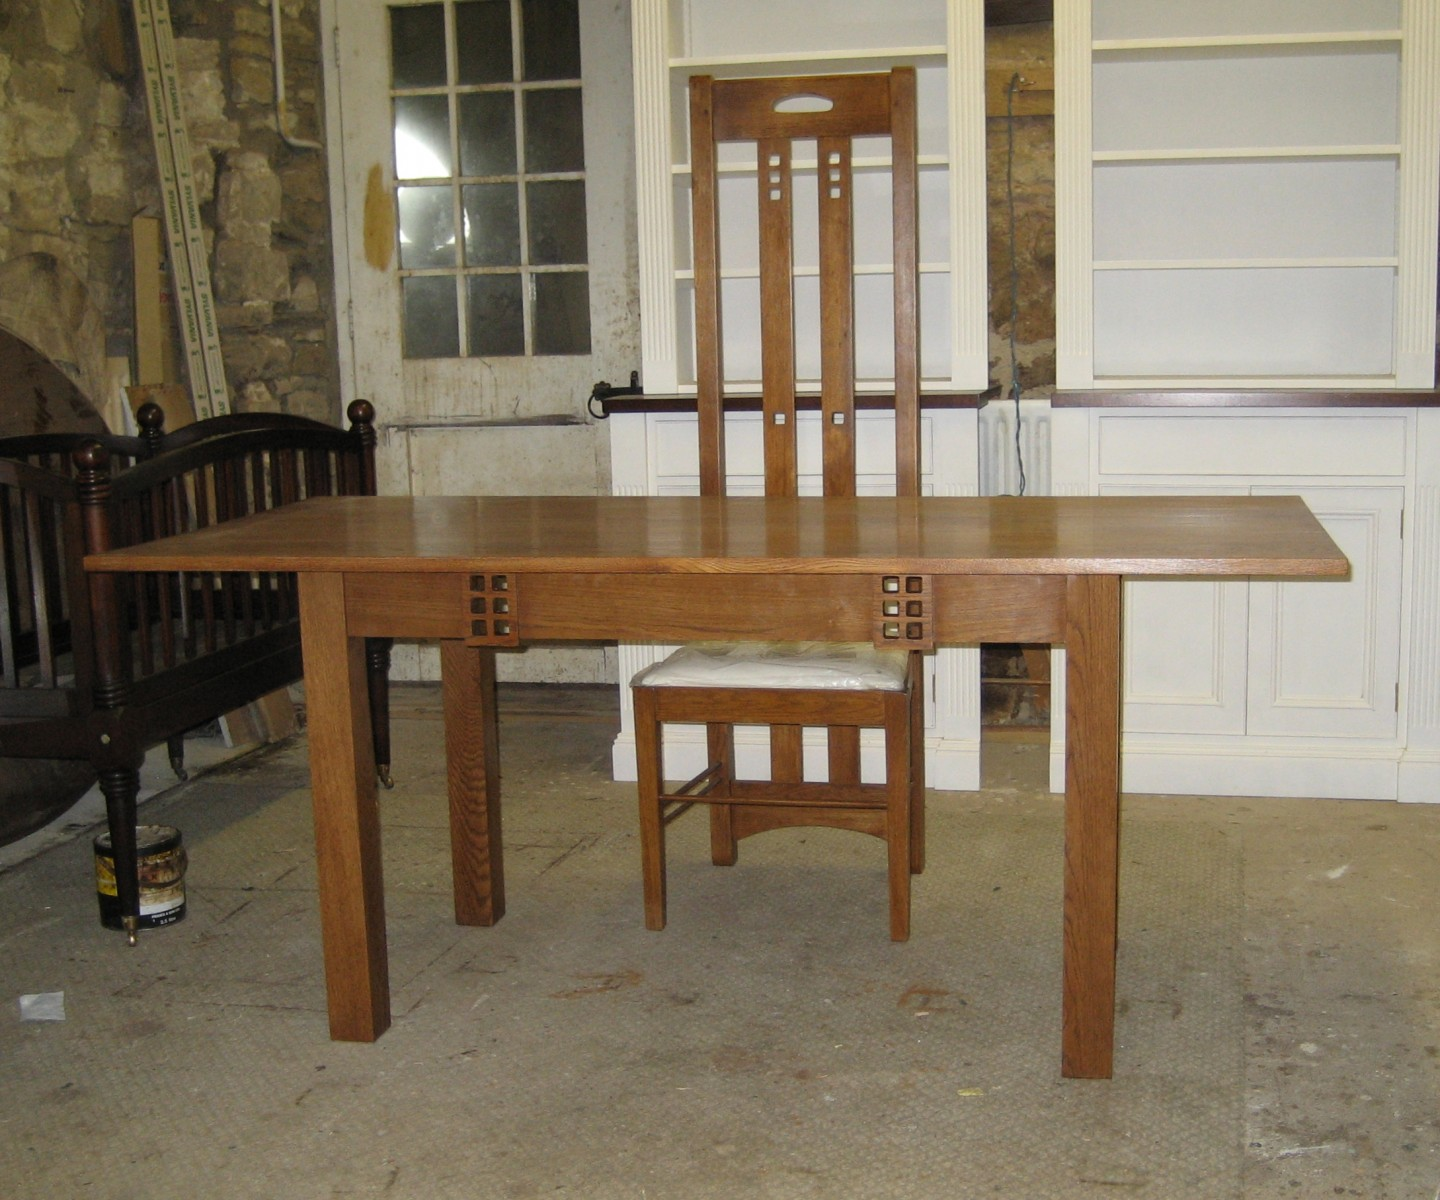 Table-mackintosh-table-and-chair